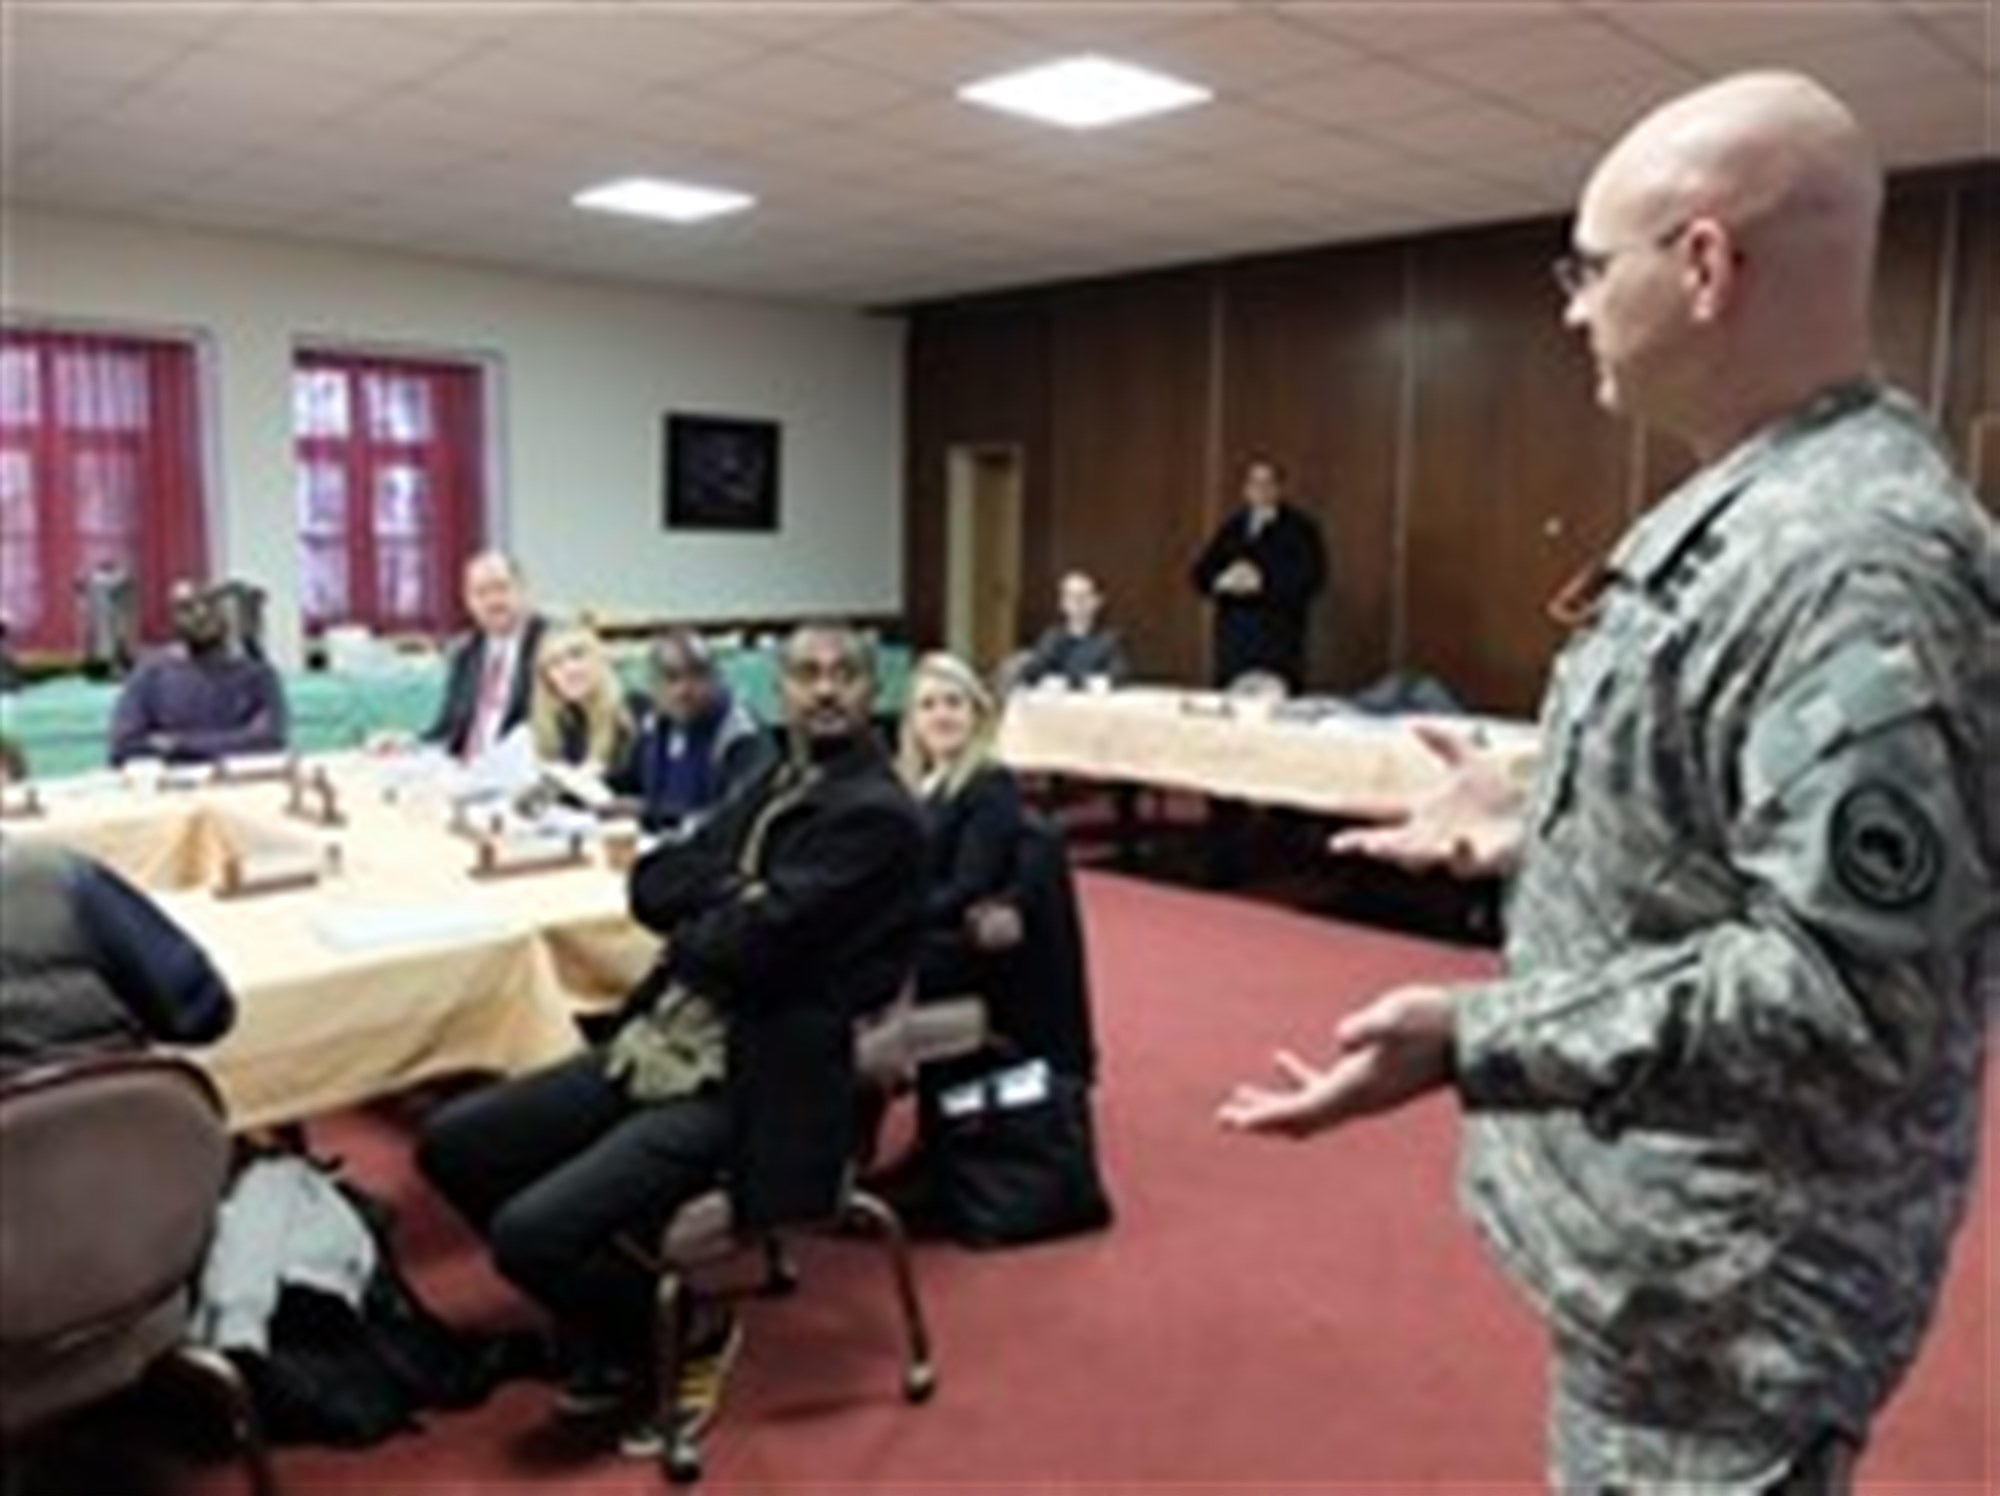 COL Mark Cheadle, AFRICOM's Chief of Public Affairs and Communication Synchronization, engages African journalists during a media delegation visit, Feb. 9, 2015, at Kelley Barracks, U.S. Army Garrison, Stuttgart, Germany.  Eight journalists, who are accredited with the African Union, are here as participants of a U.S. AFRICOM-sponsored media delegation visit to learn about the command's mission and programs. (Photo by Brenda Law/U.S. Africa Command Public Affairs/Released)